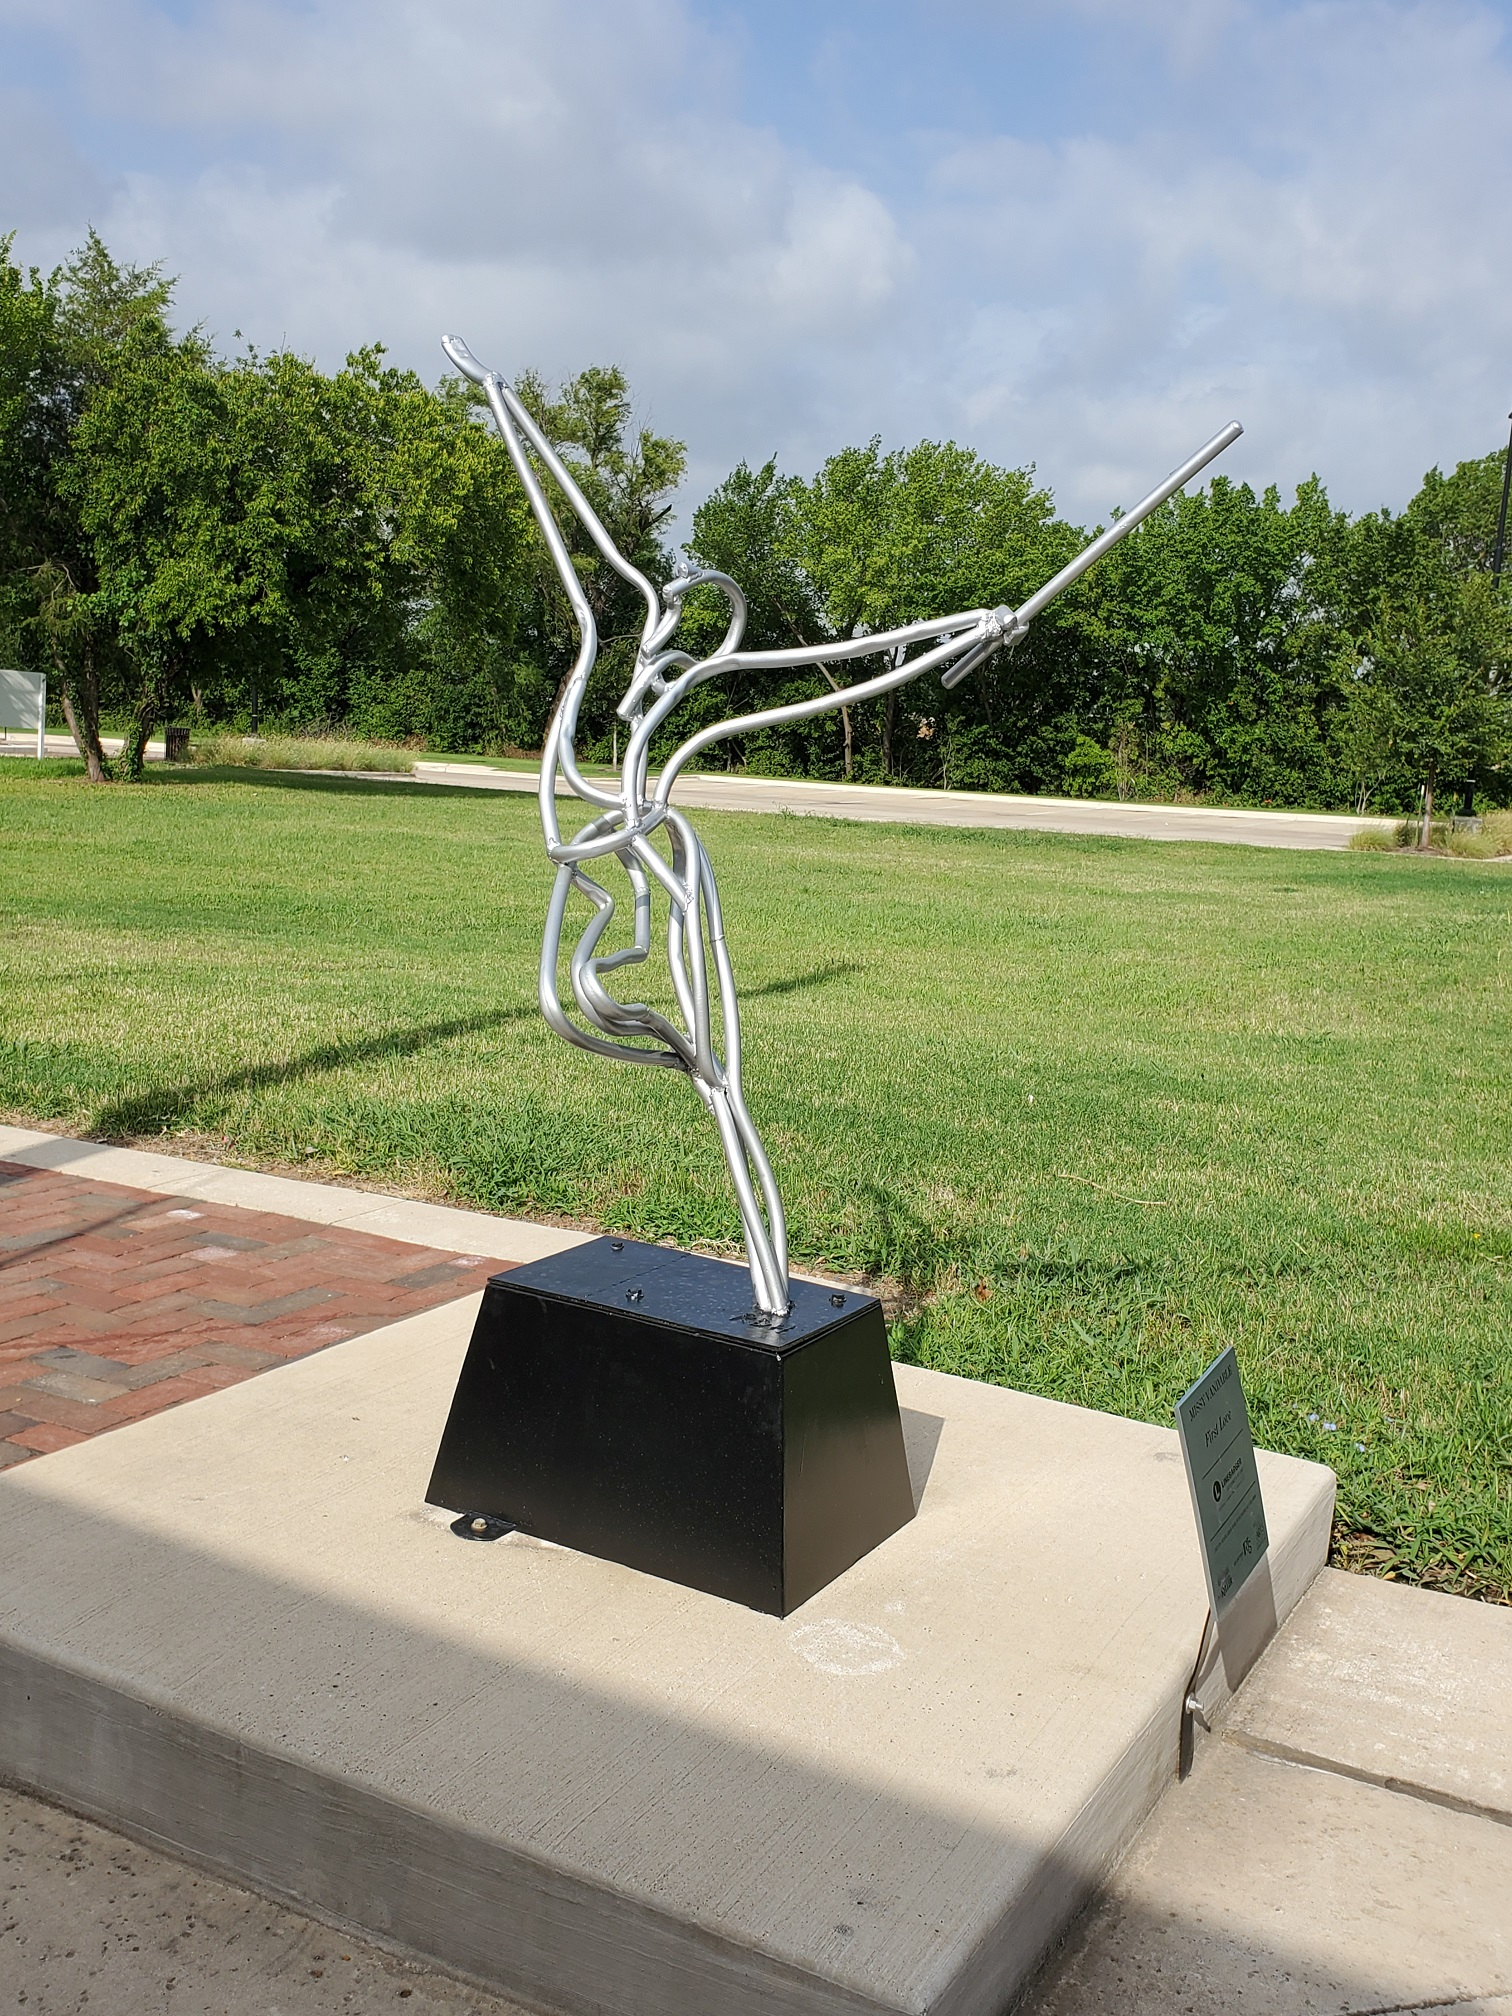 A silver sculpture in front of green grass